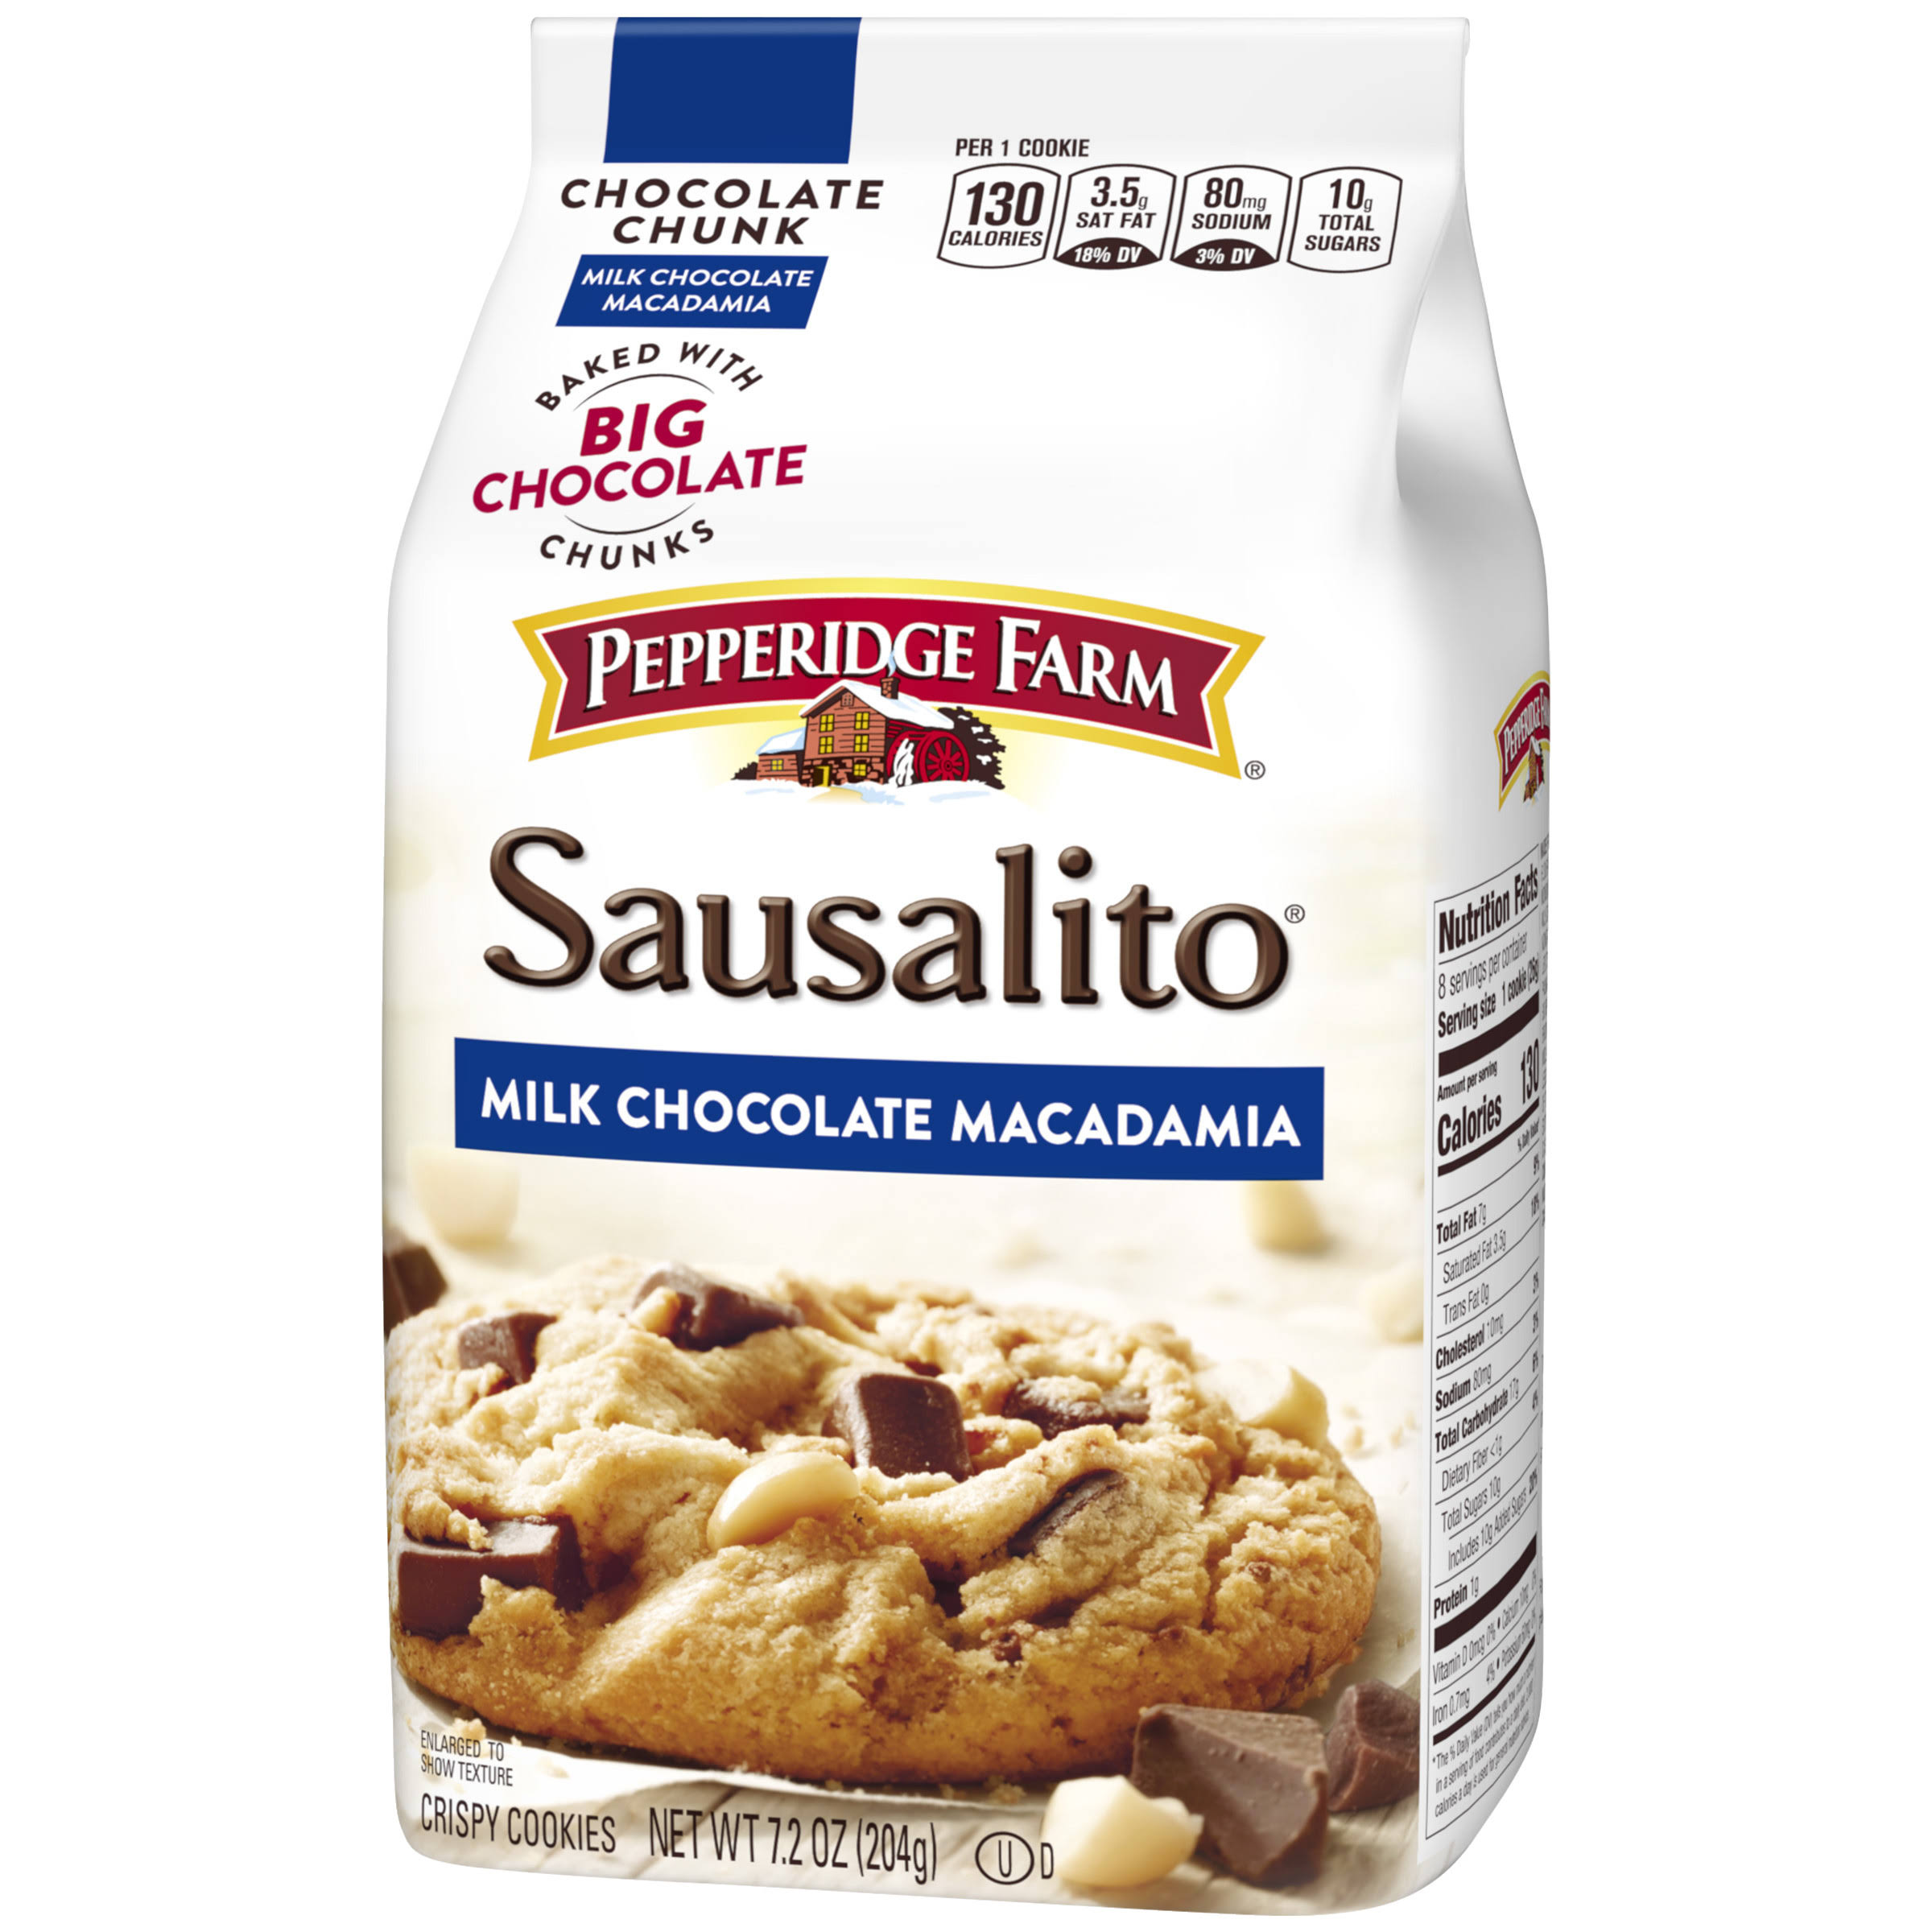 Pepperidge Farm Chocolate Chunk Cookies - Milk Chocolate Macadamia, 204g